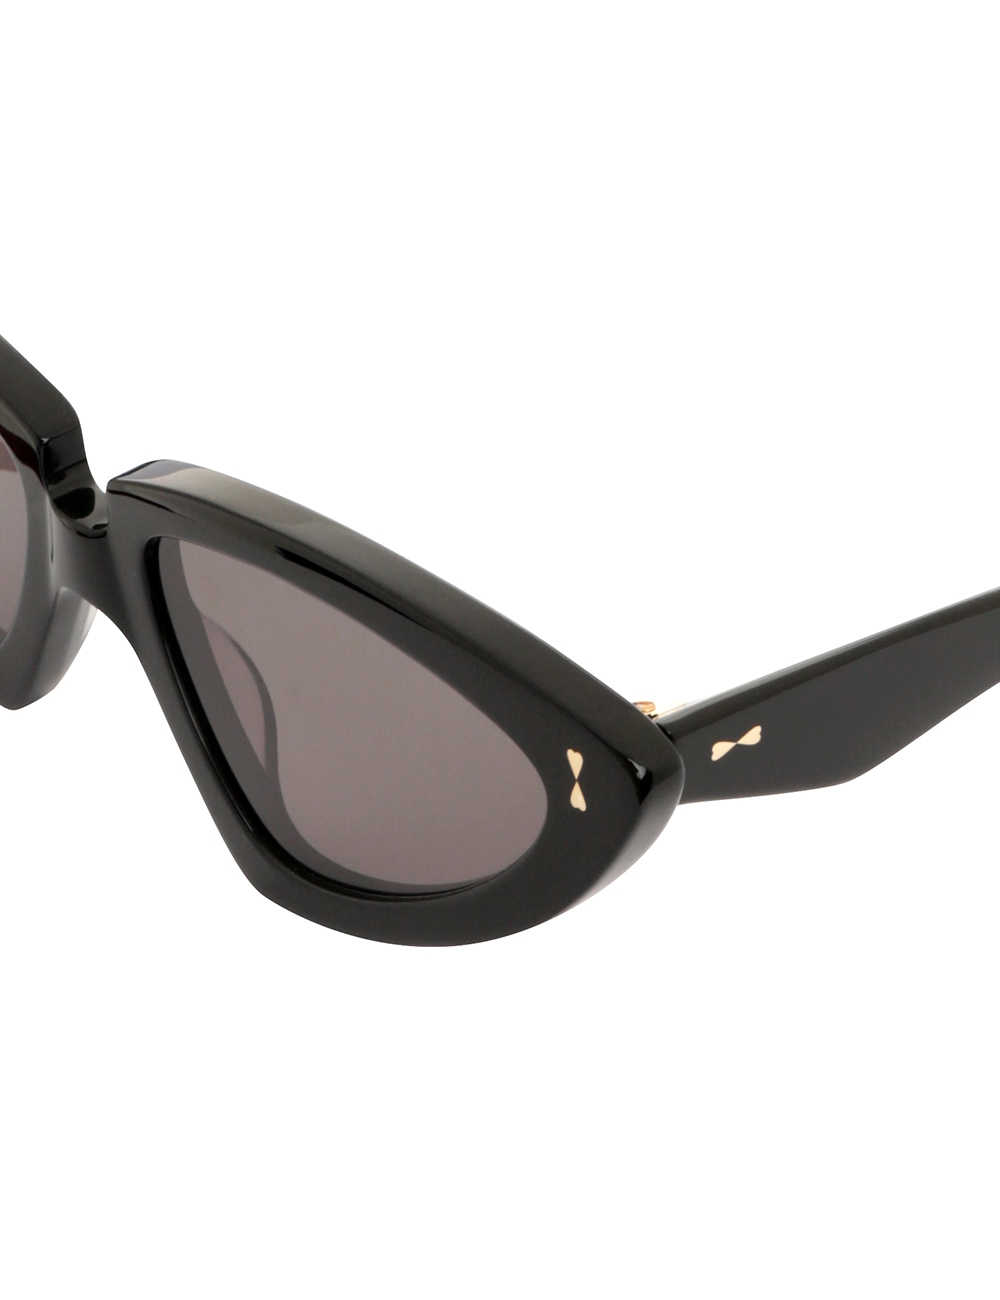 Verona Sunglasses